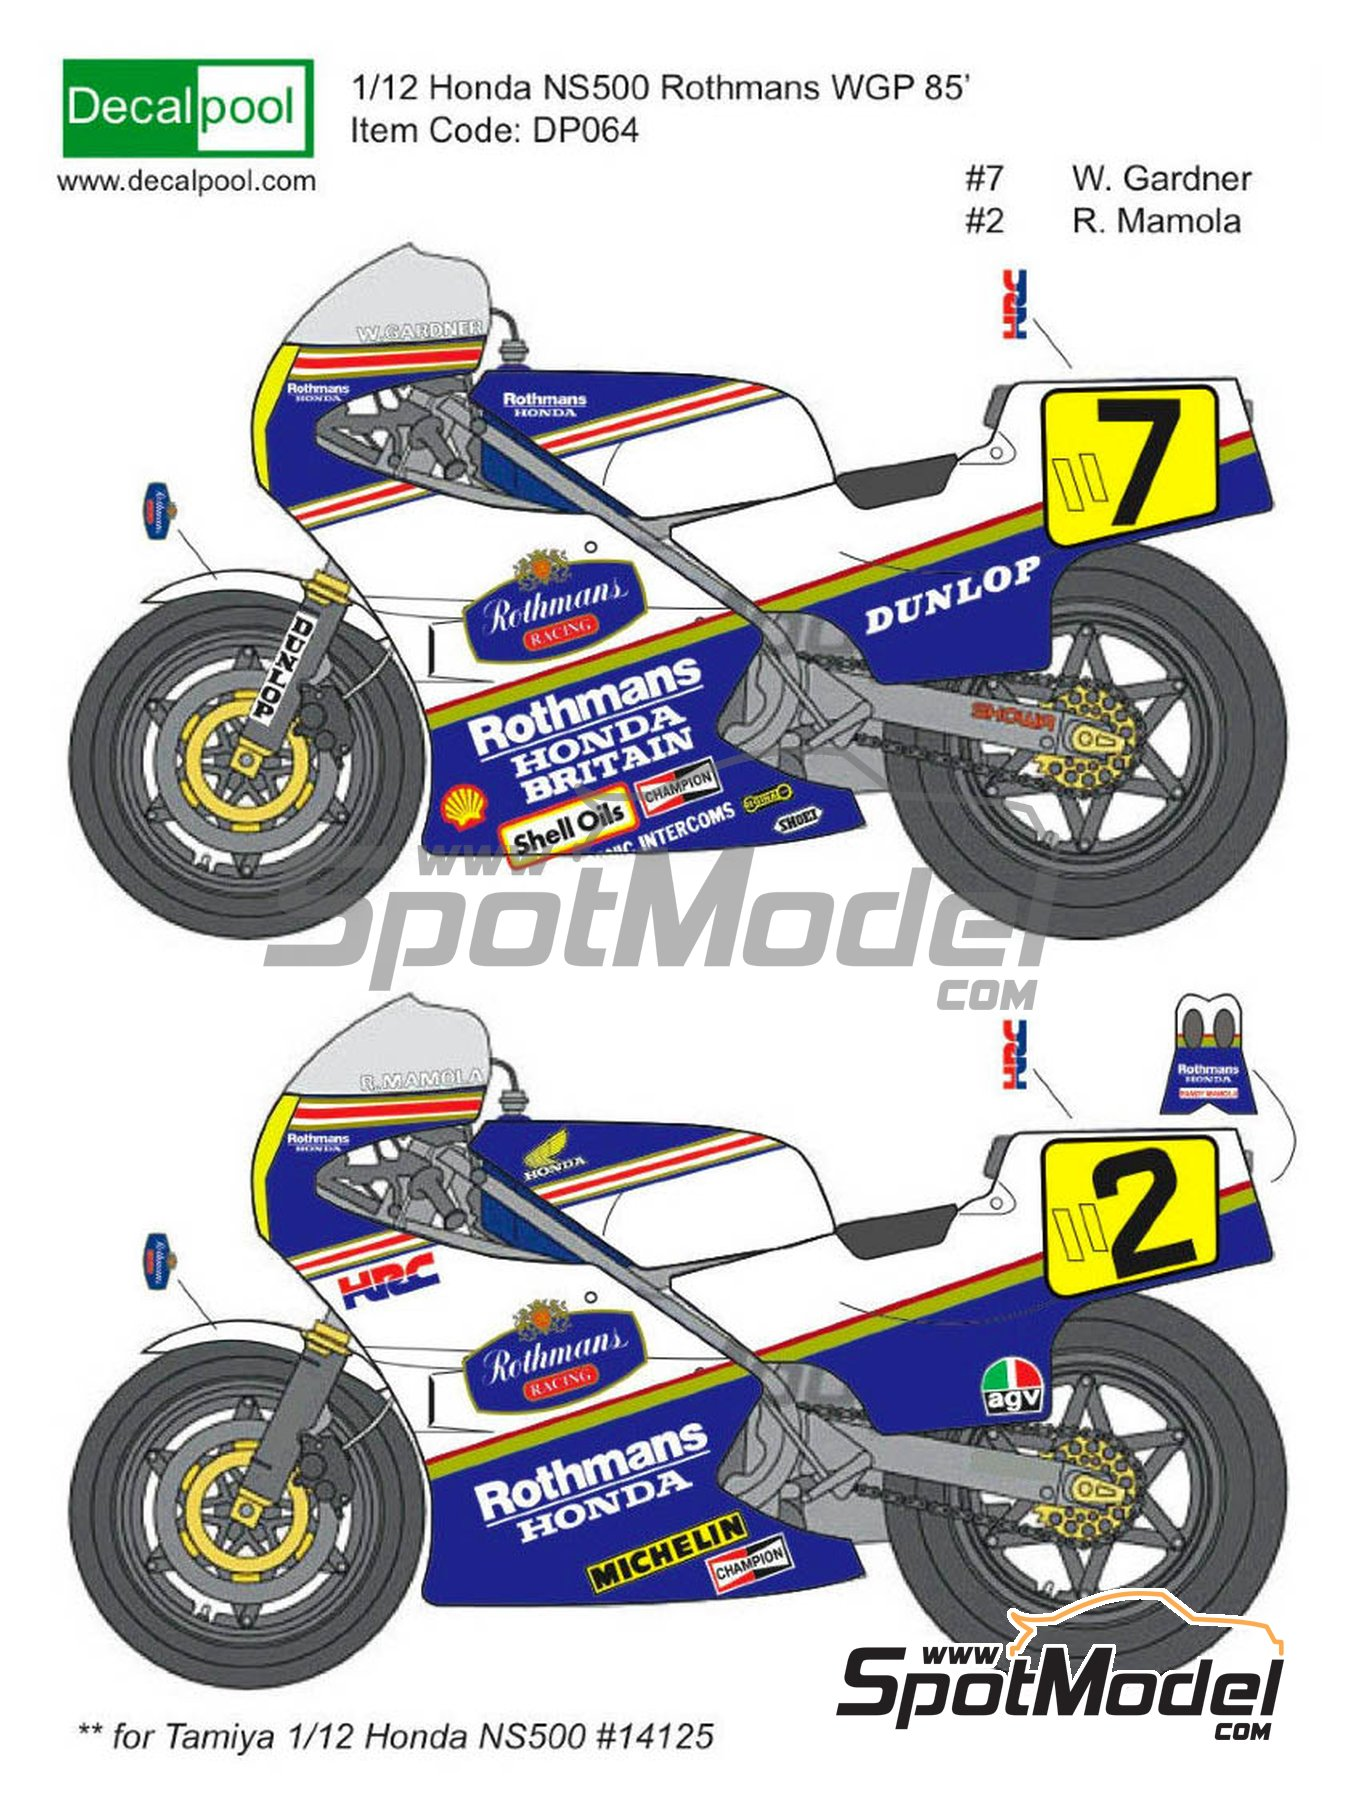 Honda NS500 Rothmans - Motorcycle World Championship 1985 | Marking / livery in 1/12 scale manufactured by Decalpool (ref.DP036) image